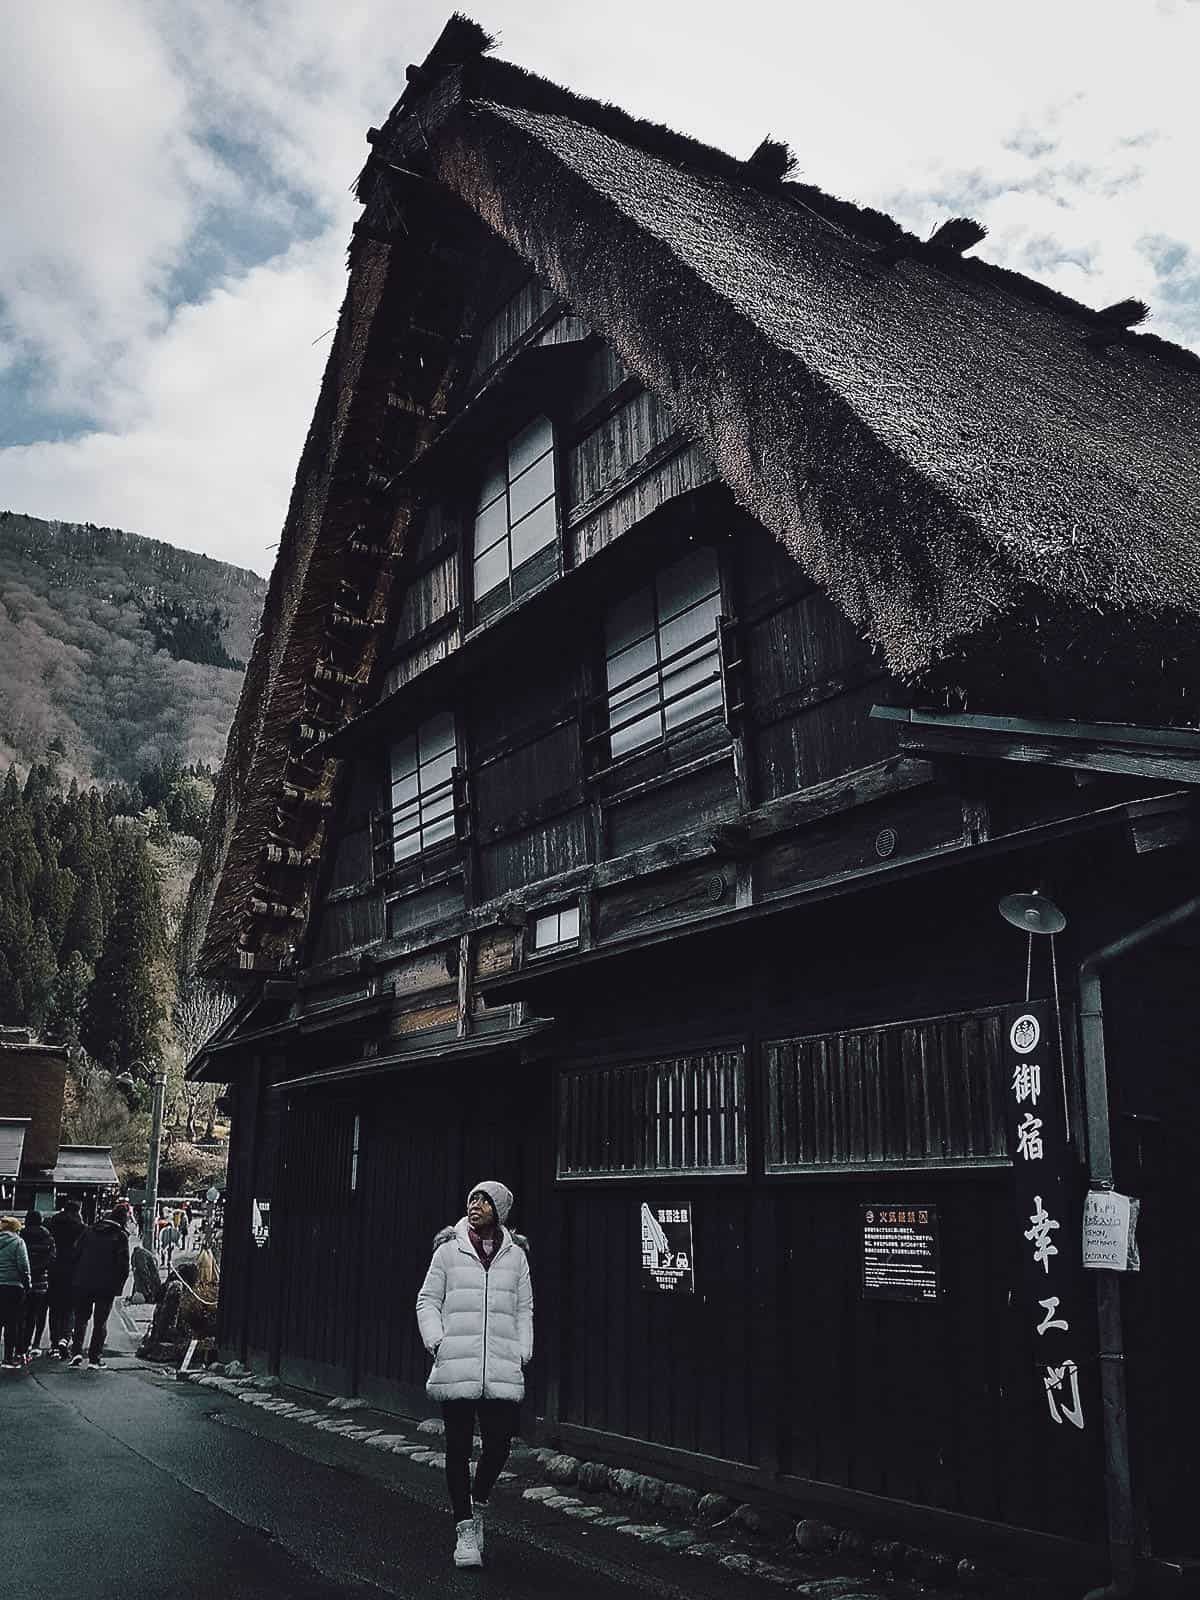 Shirakawa-go houses without snow